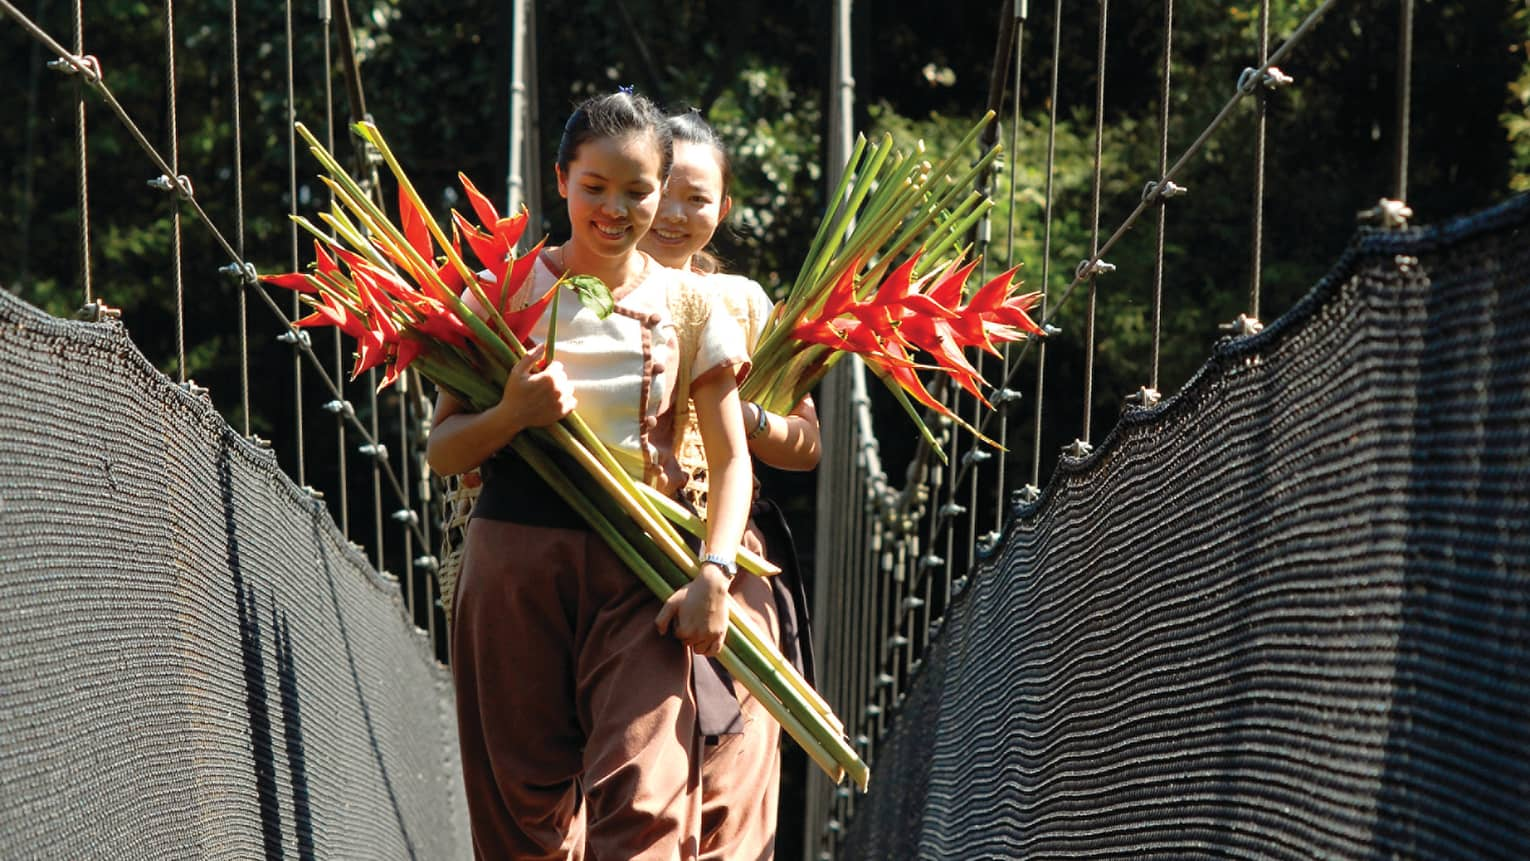 Two women walk down bridge holding bouquets of long-stemmed tropical flowers